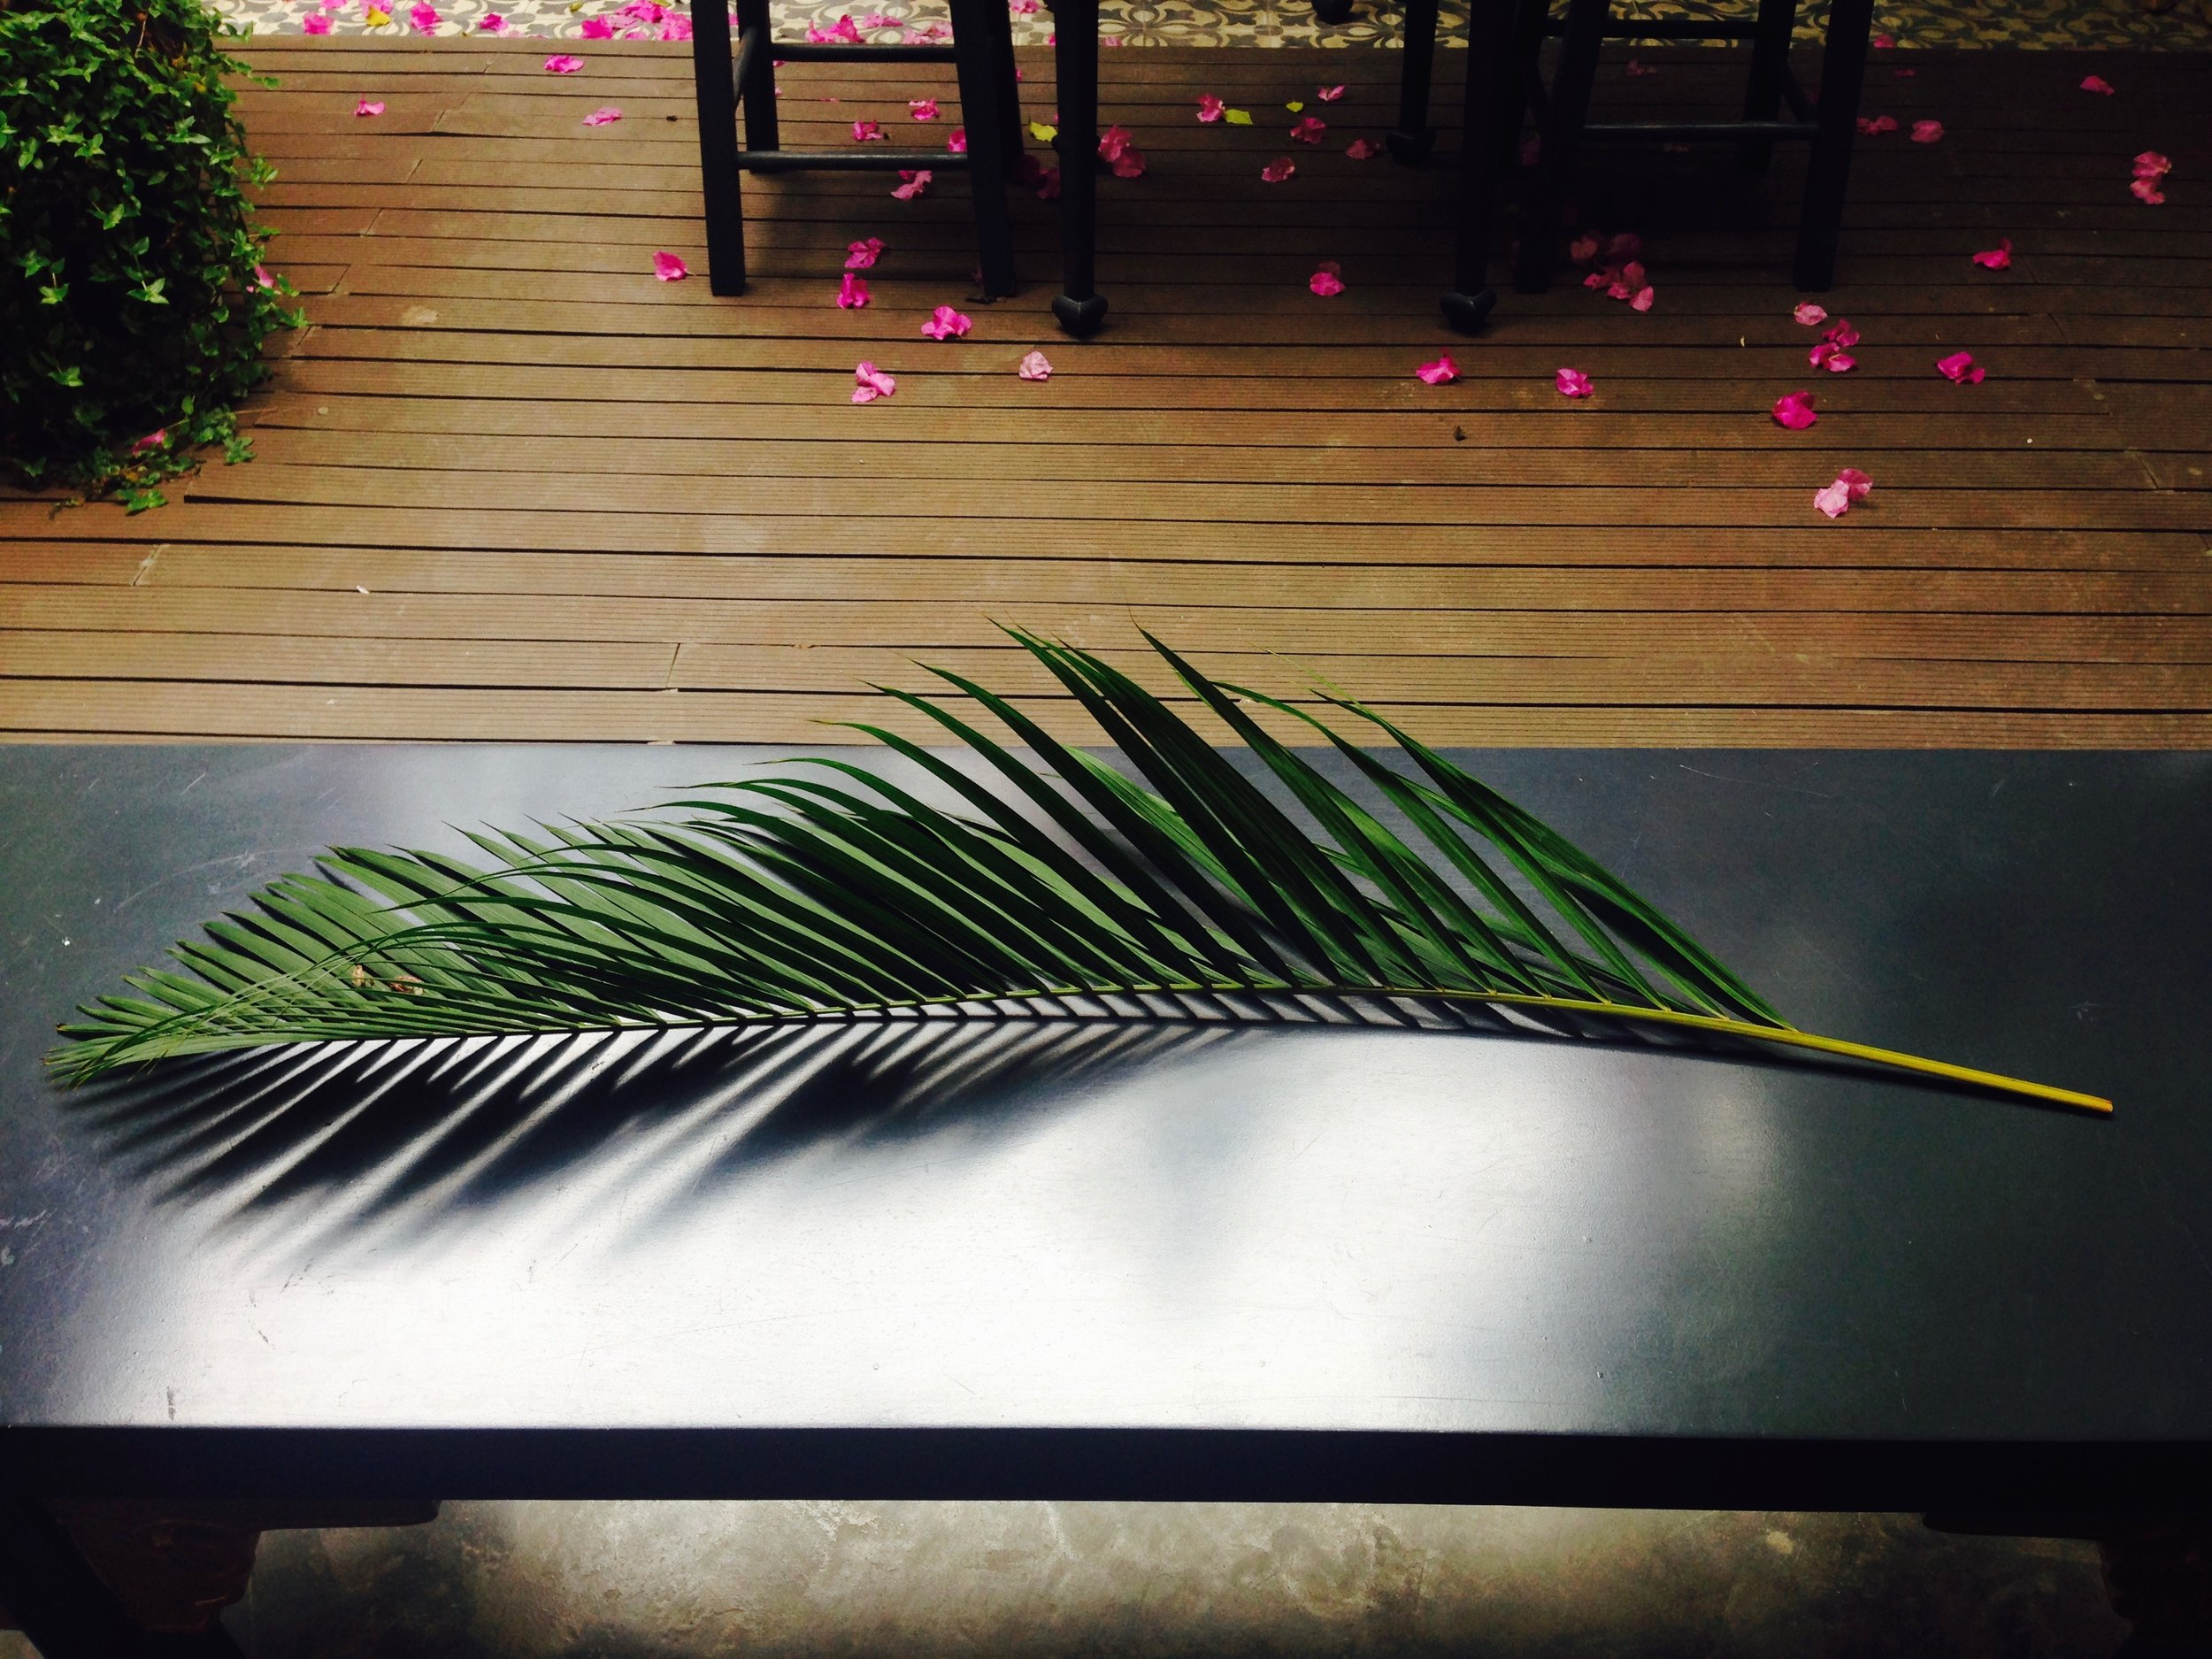 What's a cute boutique shop without a free-standing palm frond for you to cool off with?